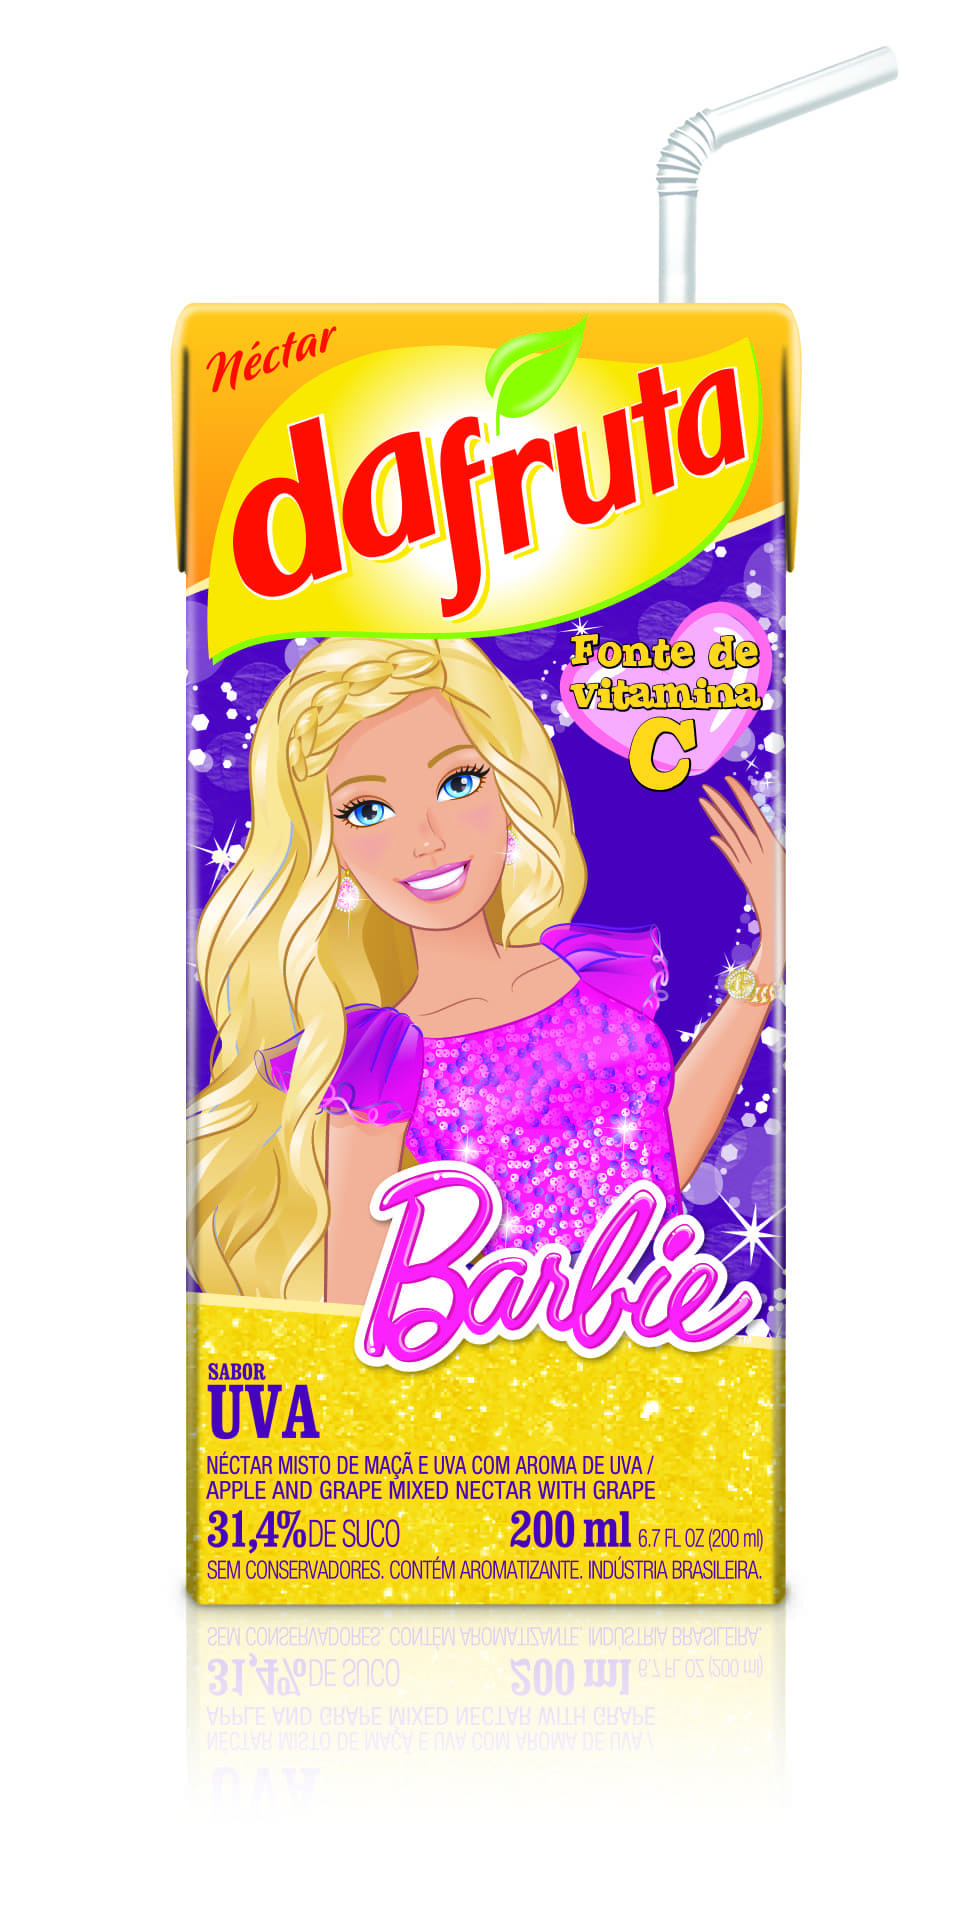 Dafruta-Barbie-Uva-200ml